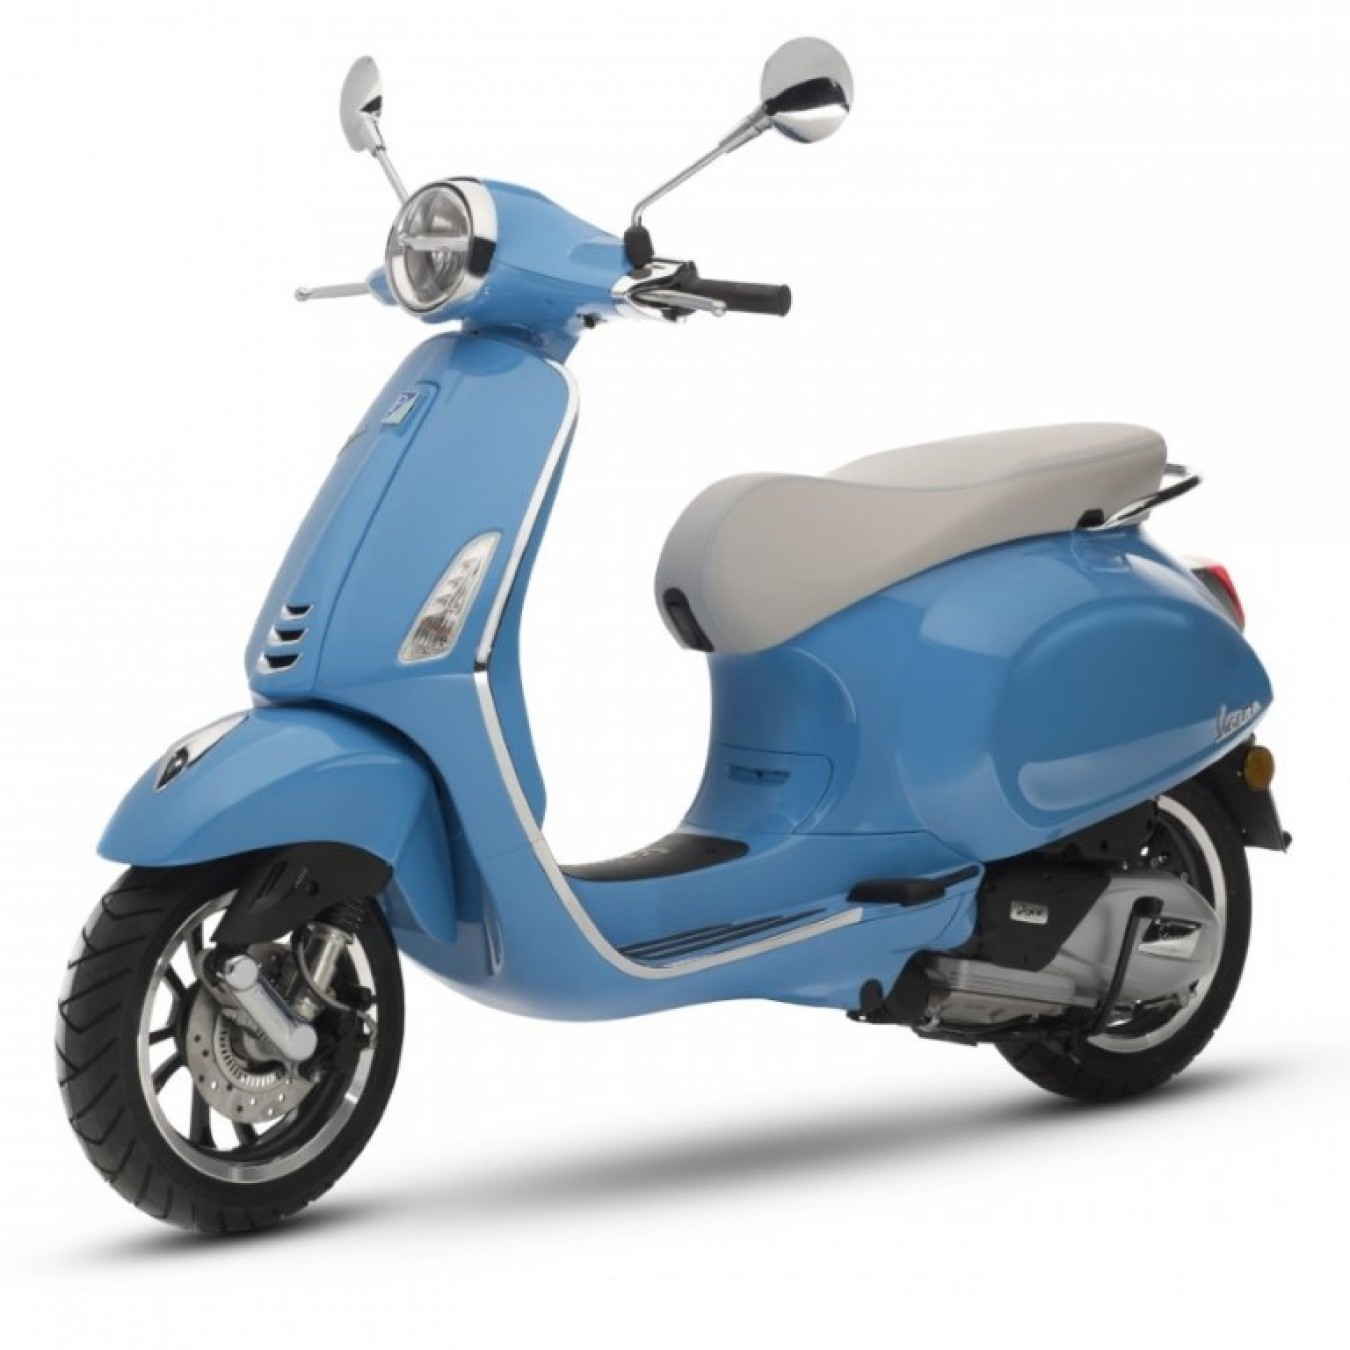 vespa primavera 125 i get abs e4 50 anniversario. Black Bedroom Furniture Sets. Home Design Ideas